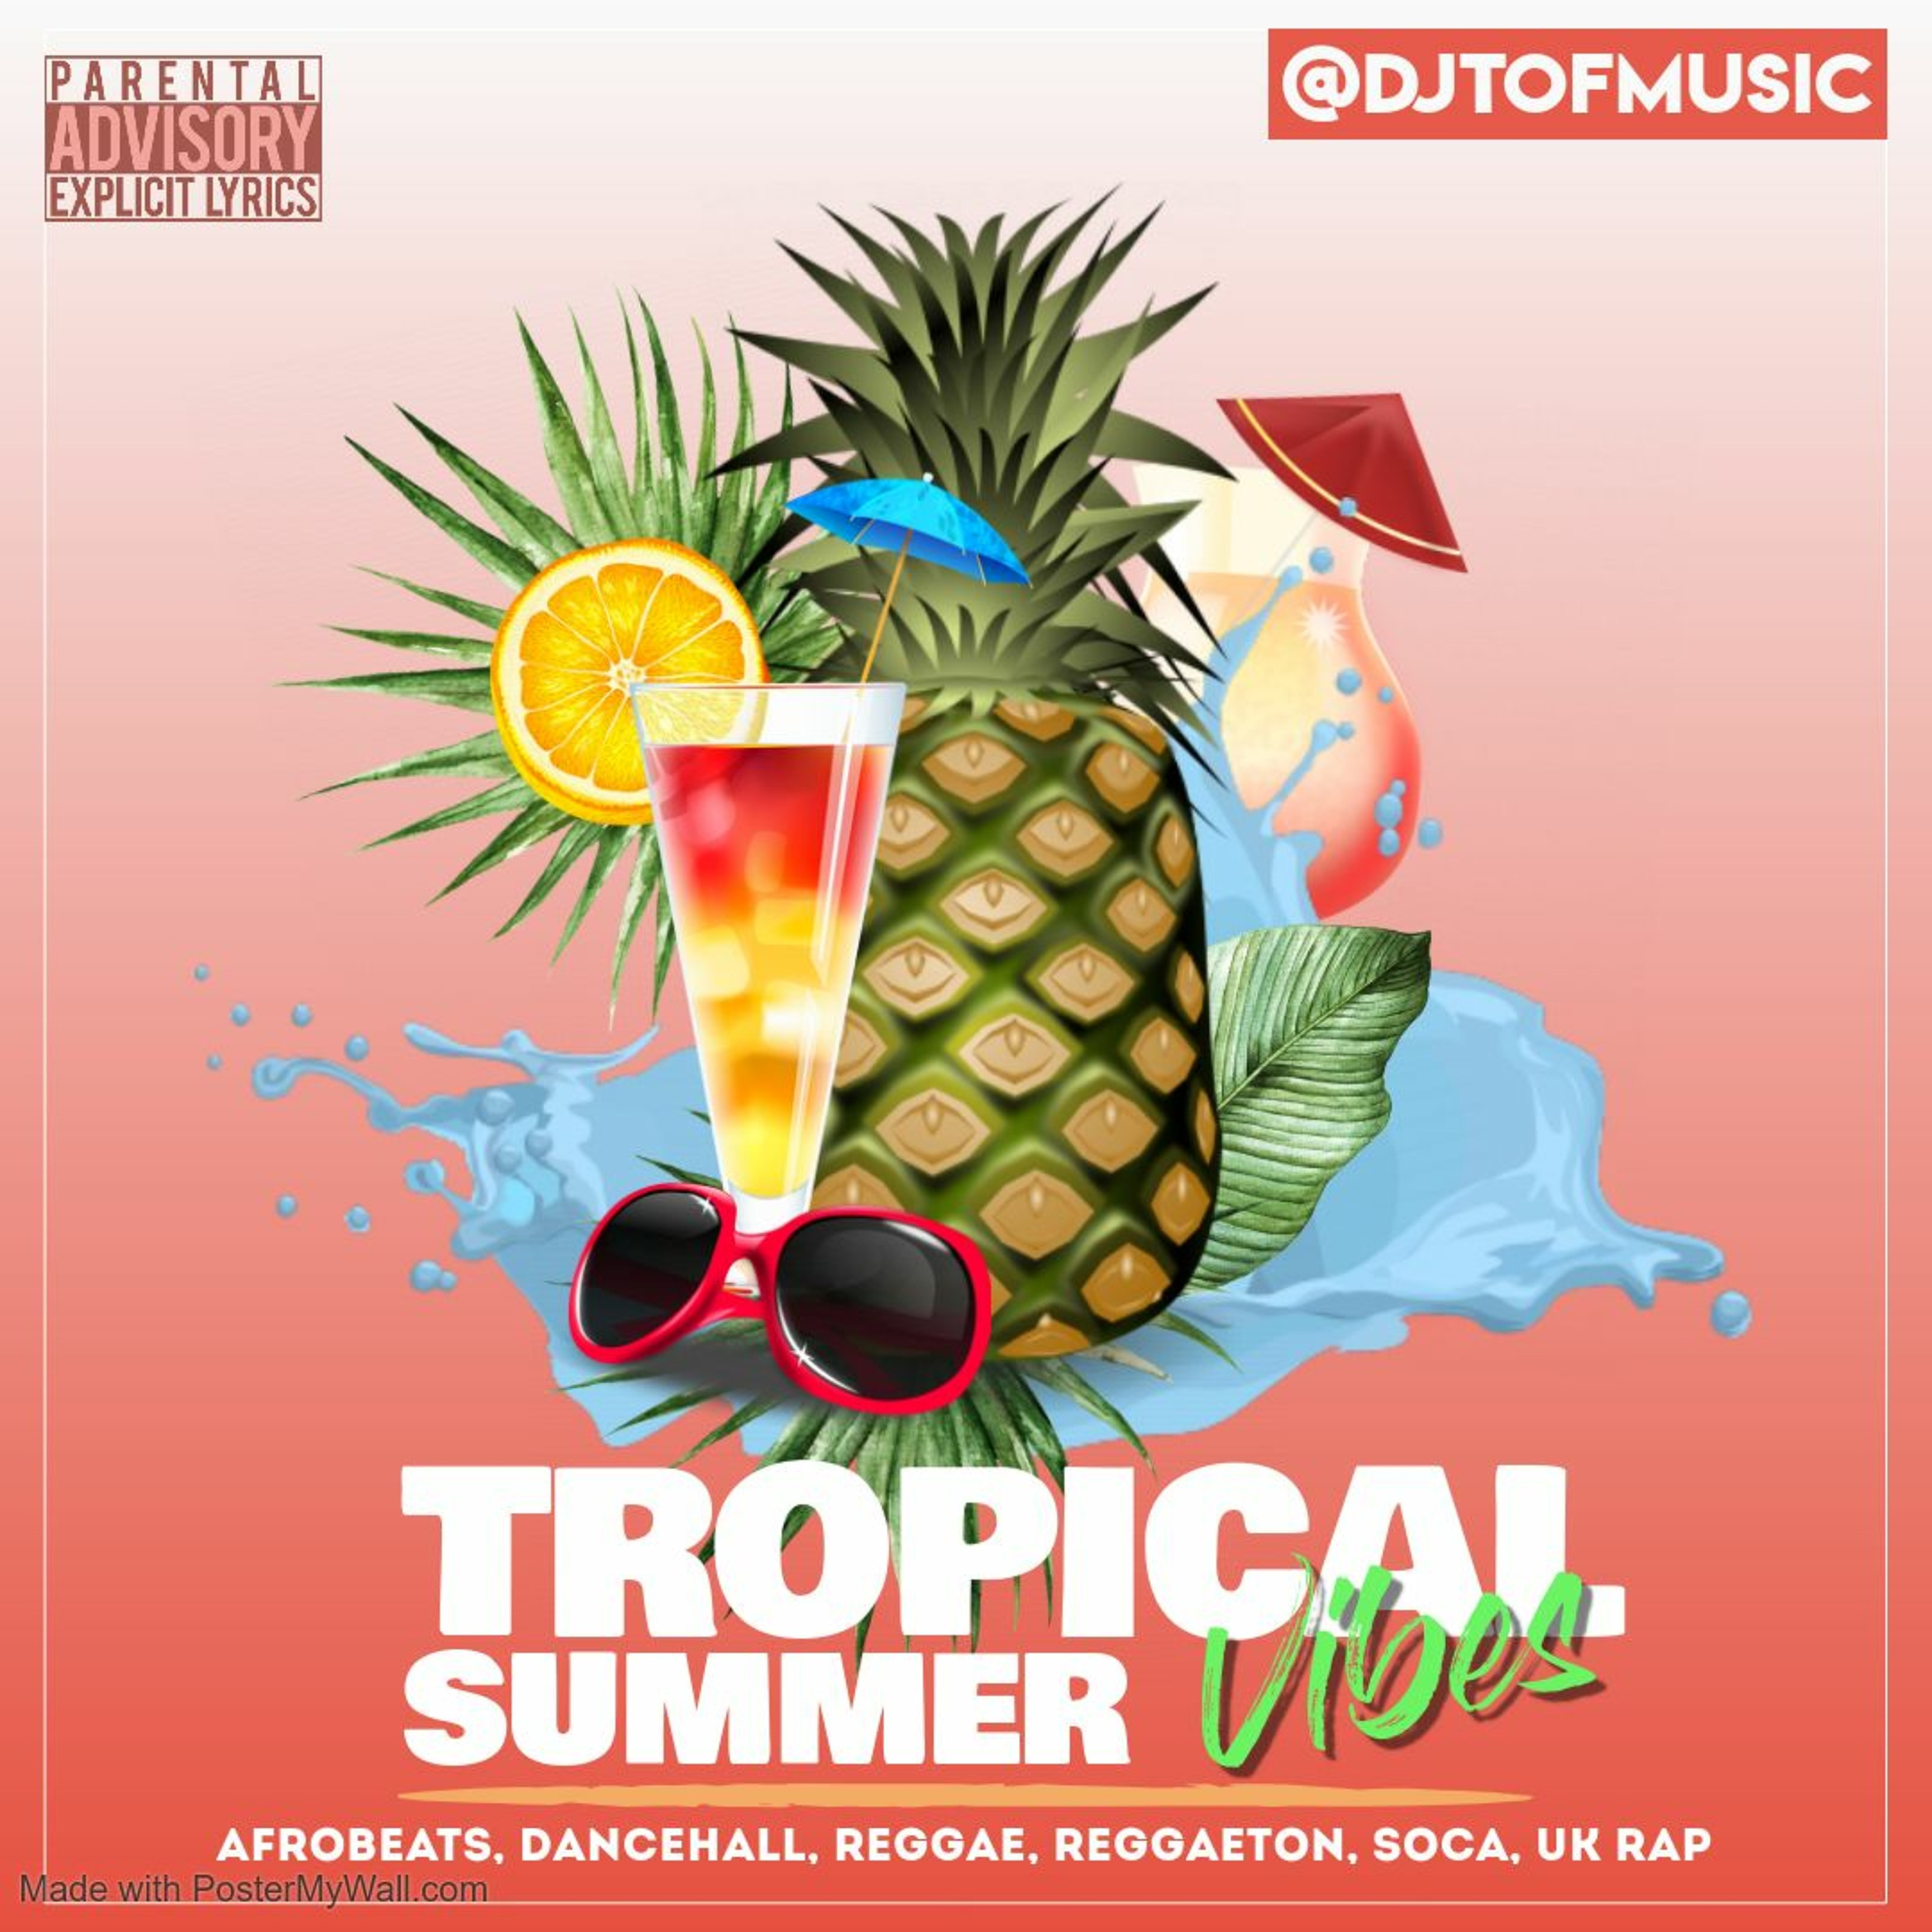 TROPICAL SUMMER VIBES 1